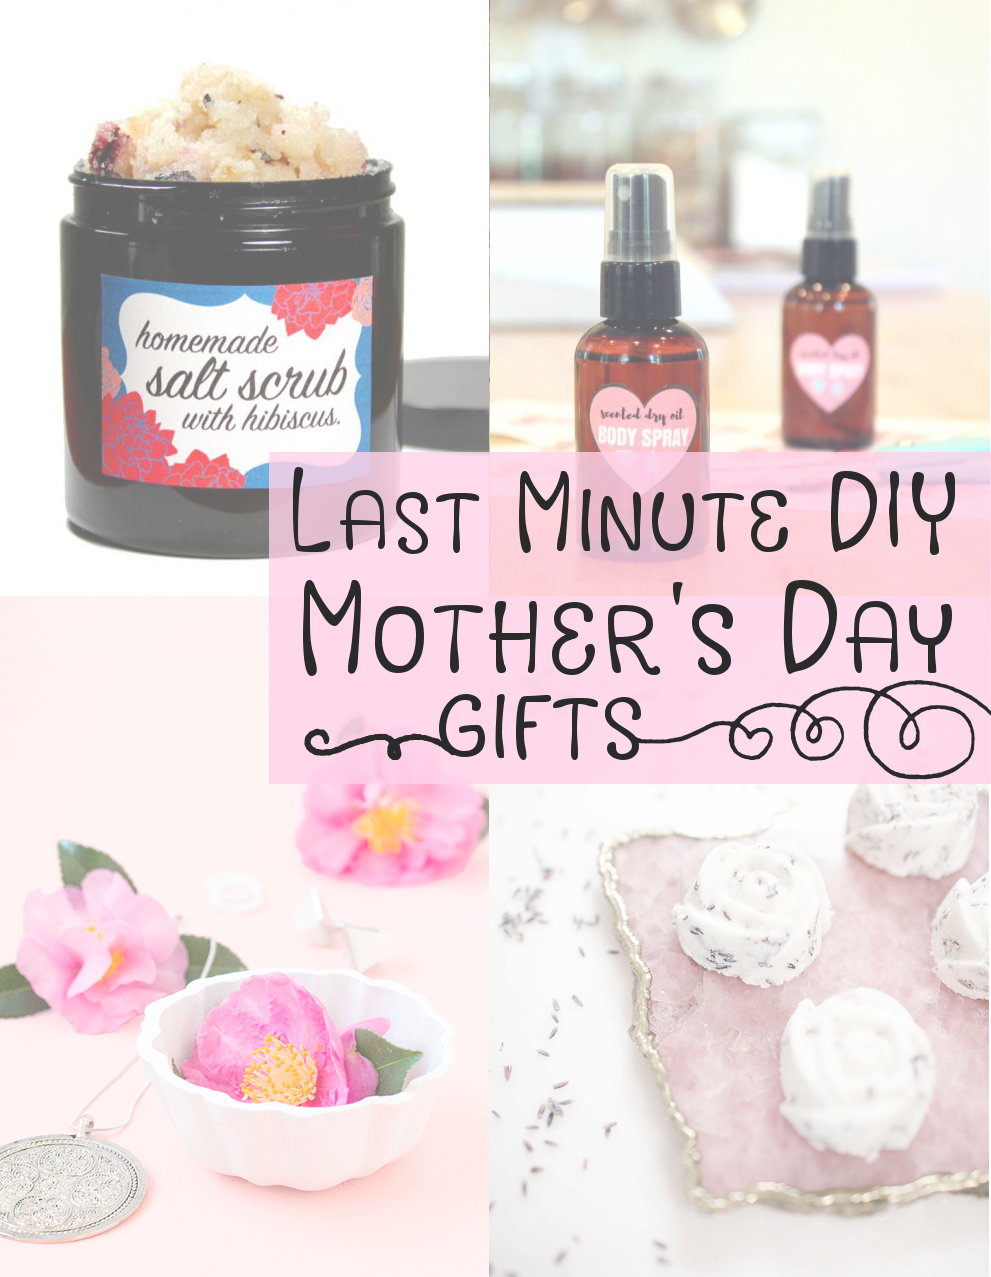 8 Last Minute Mother 39 S Day Gift Ideas To Diy Soap Deli News